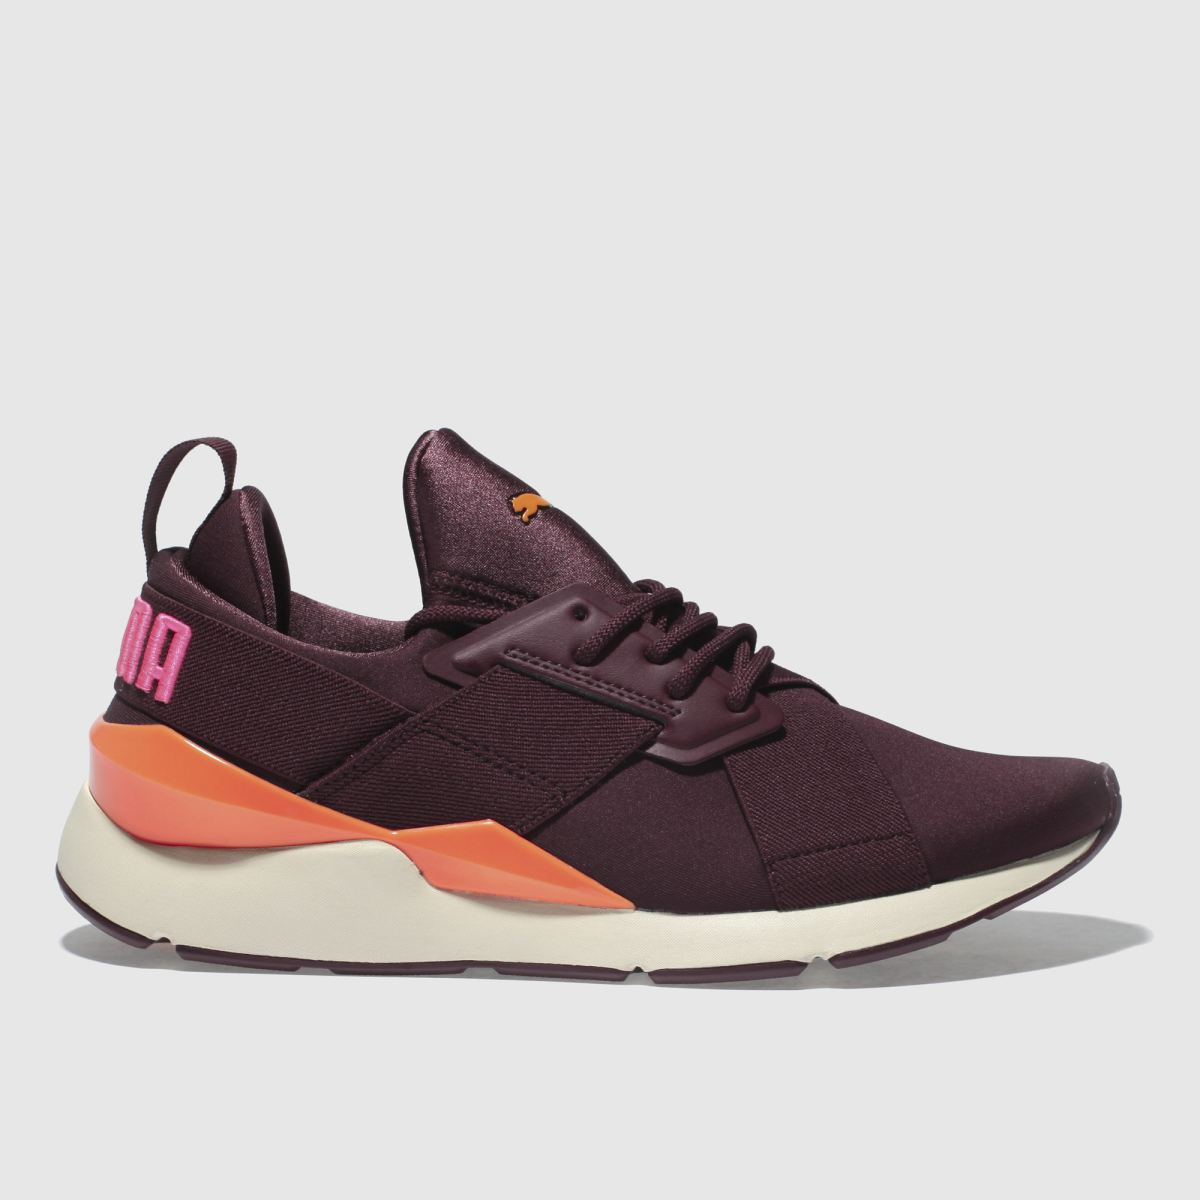 Puma Burgundy Muse Chase Trainers